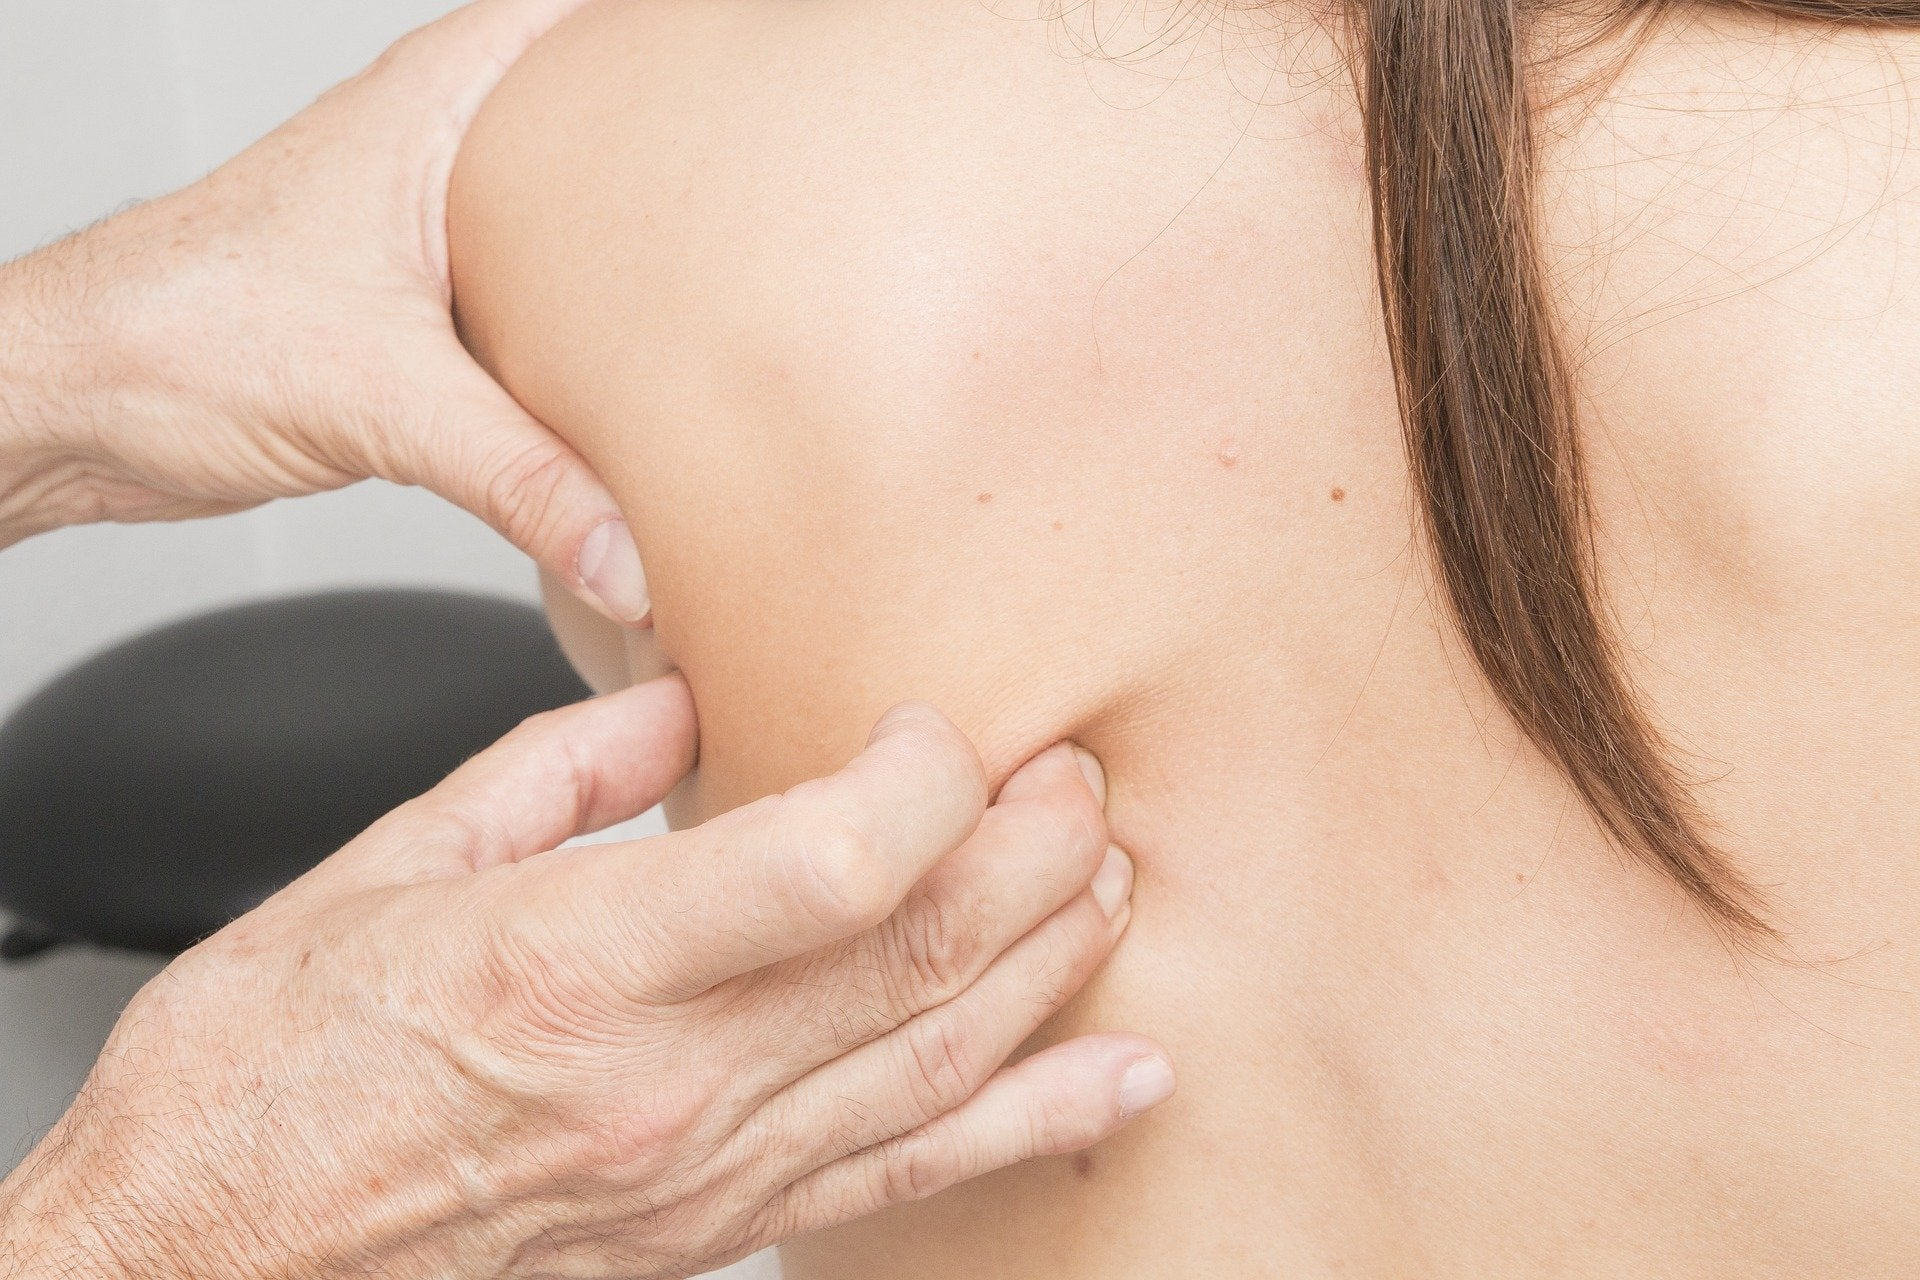 Massage for Back and Neck Pain